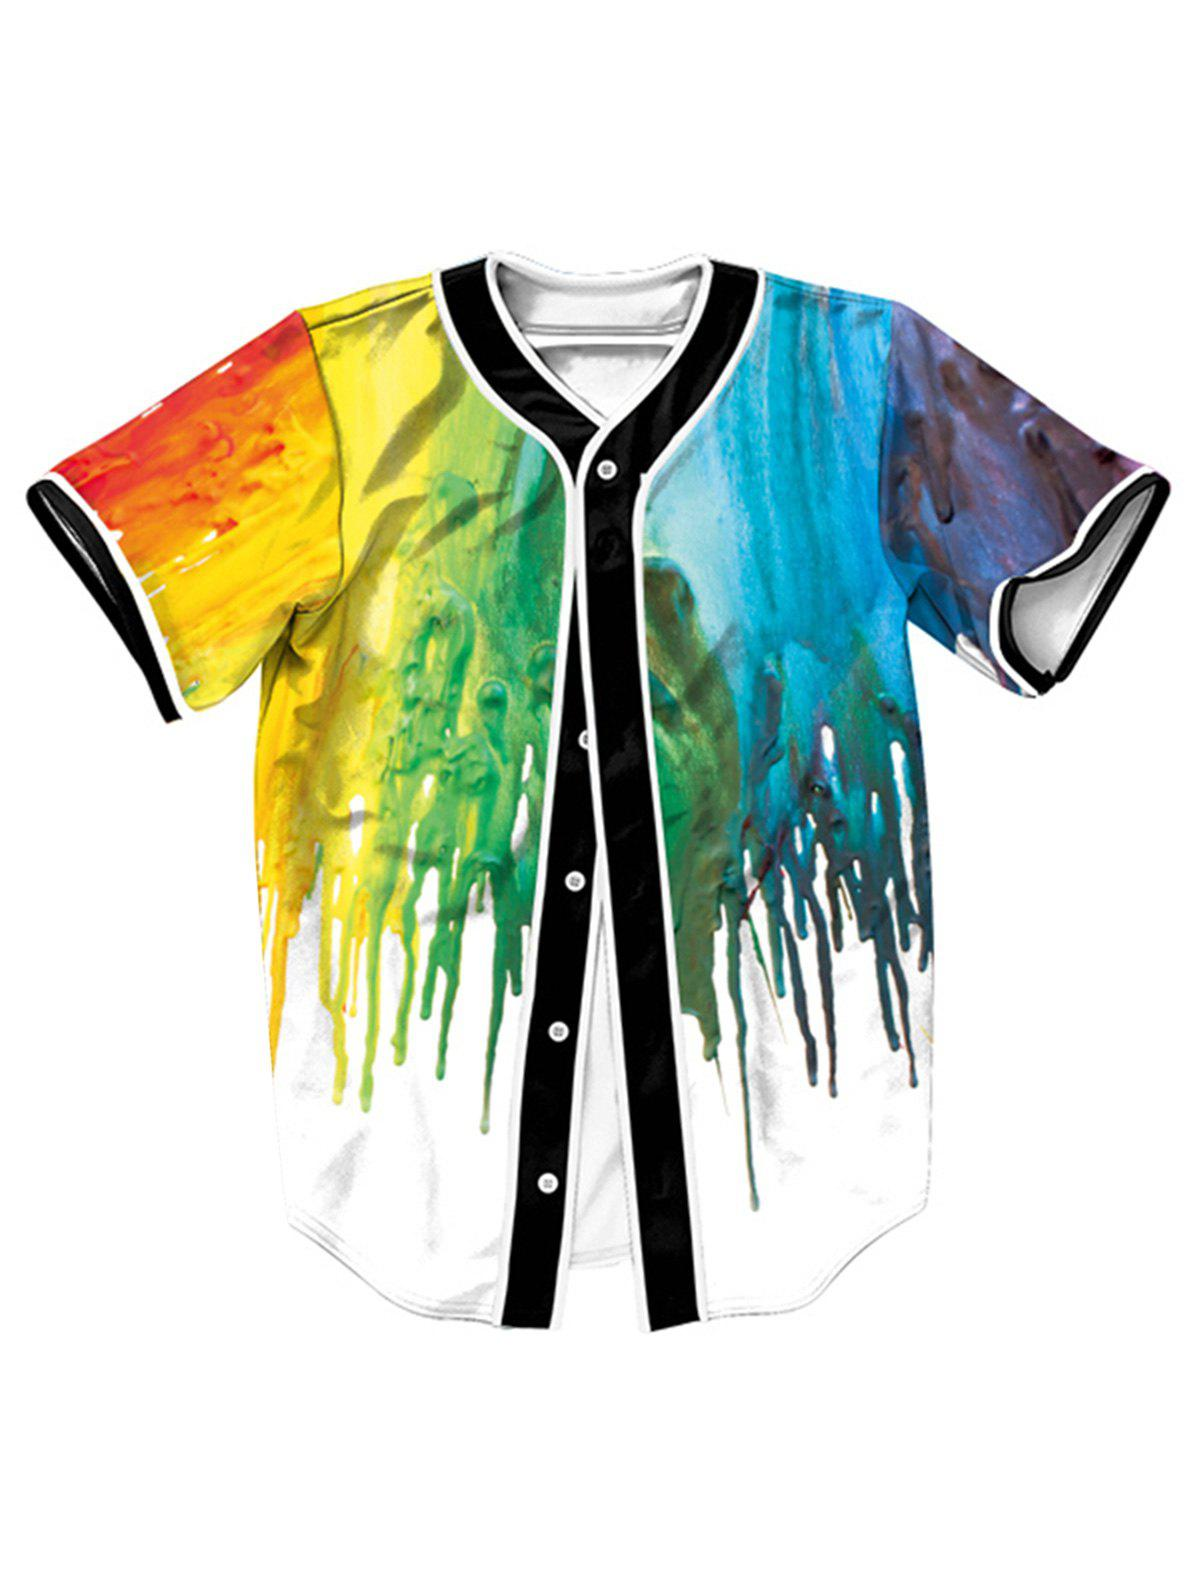 Chic Colorful Paint Dripping Button Up Baseball Jersey